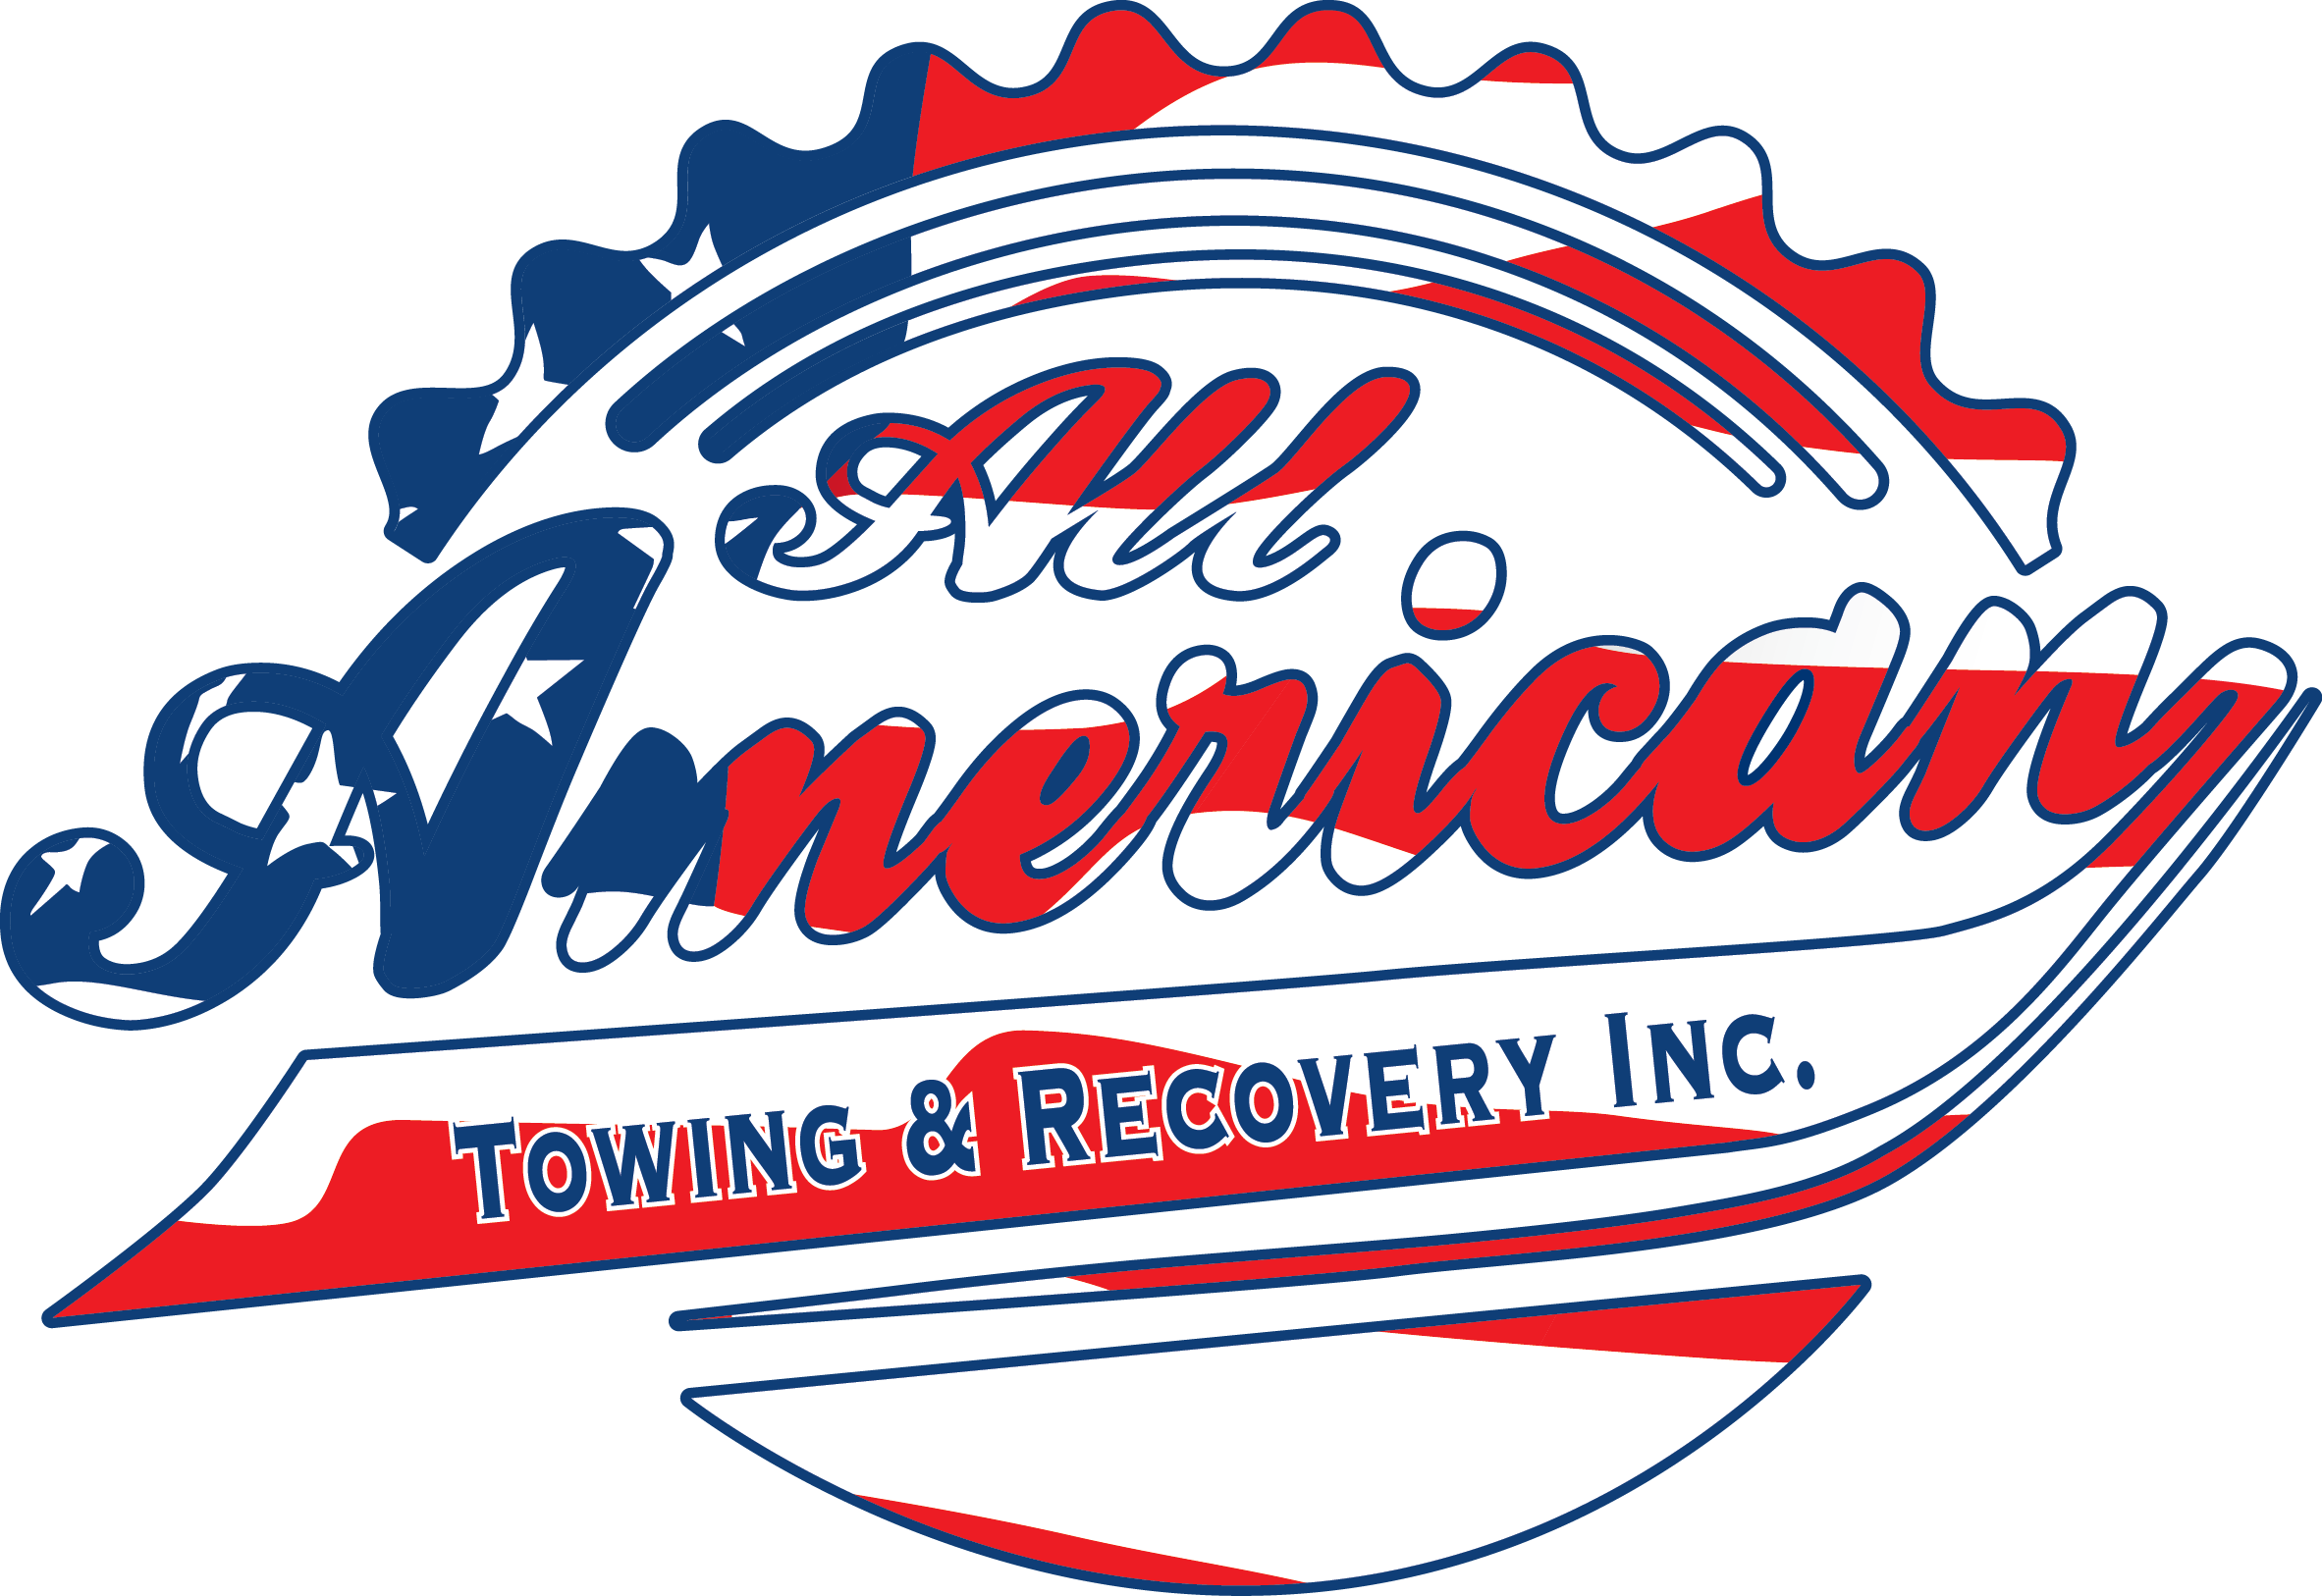 All American Towing & Recovery image 4